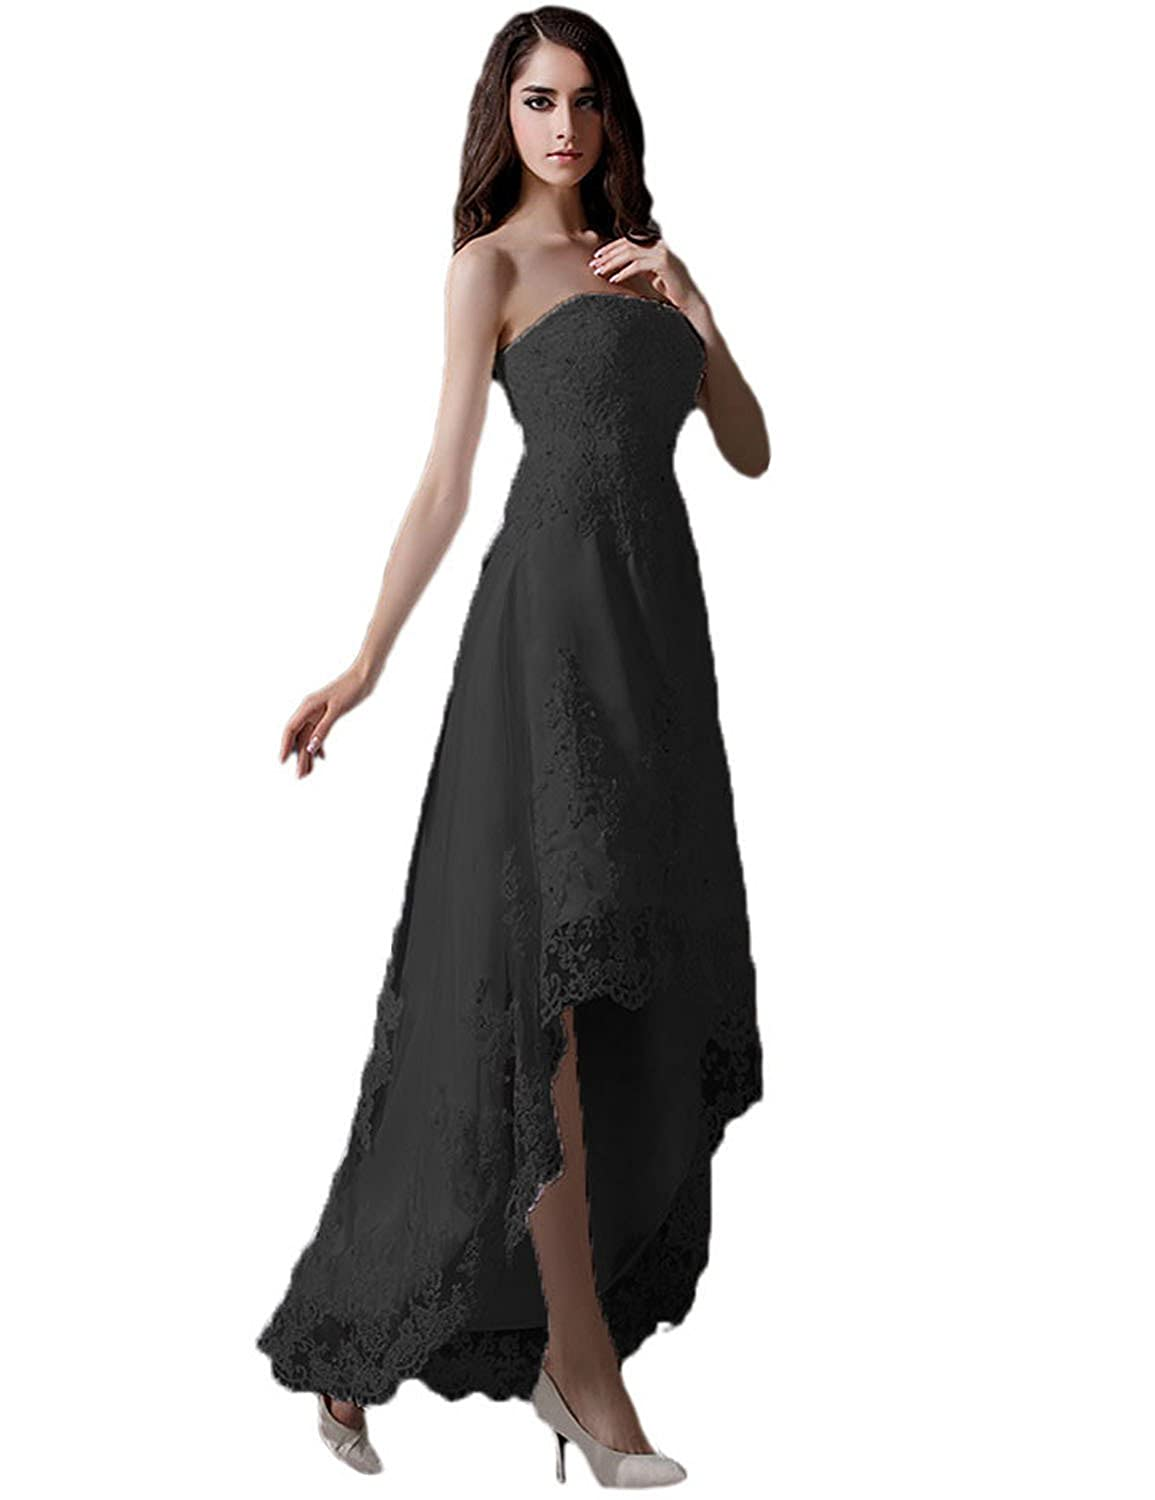 Black Vimans Women's 2019 High Low Strapless Beaded Lace Evening Party Dresses